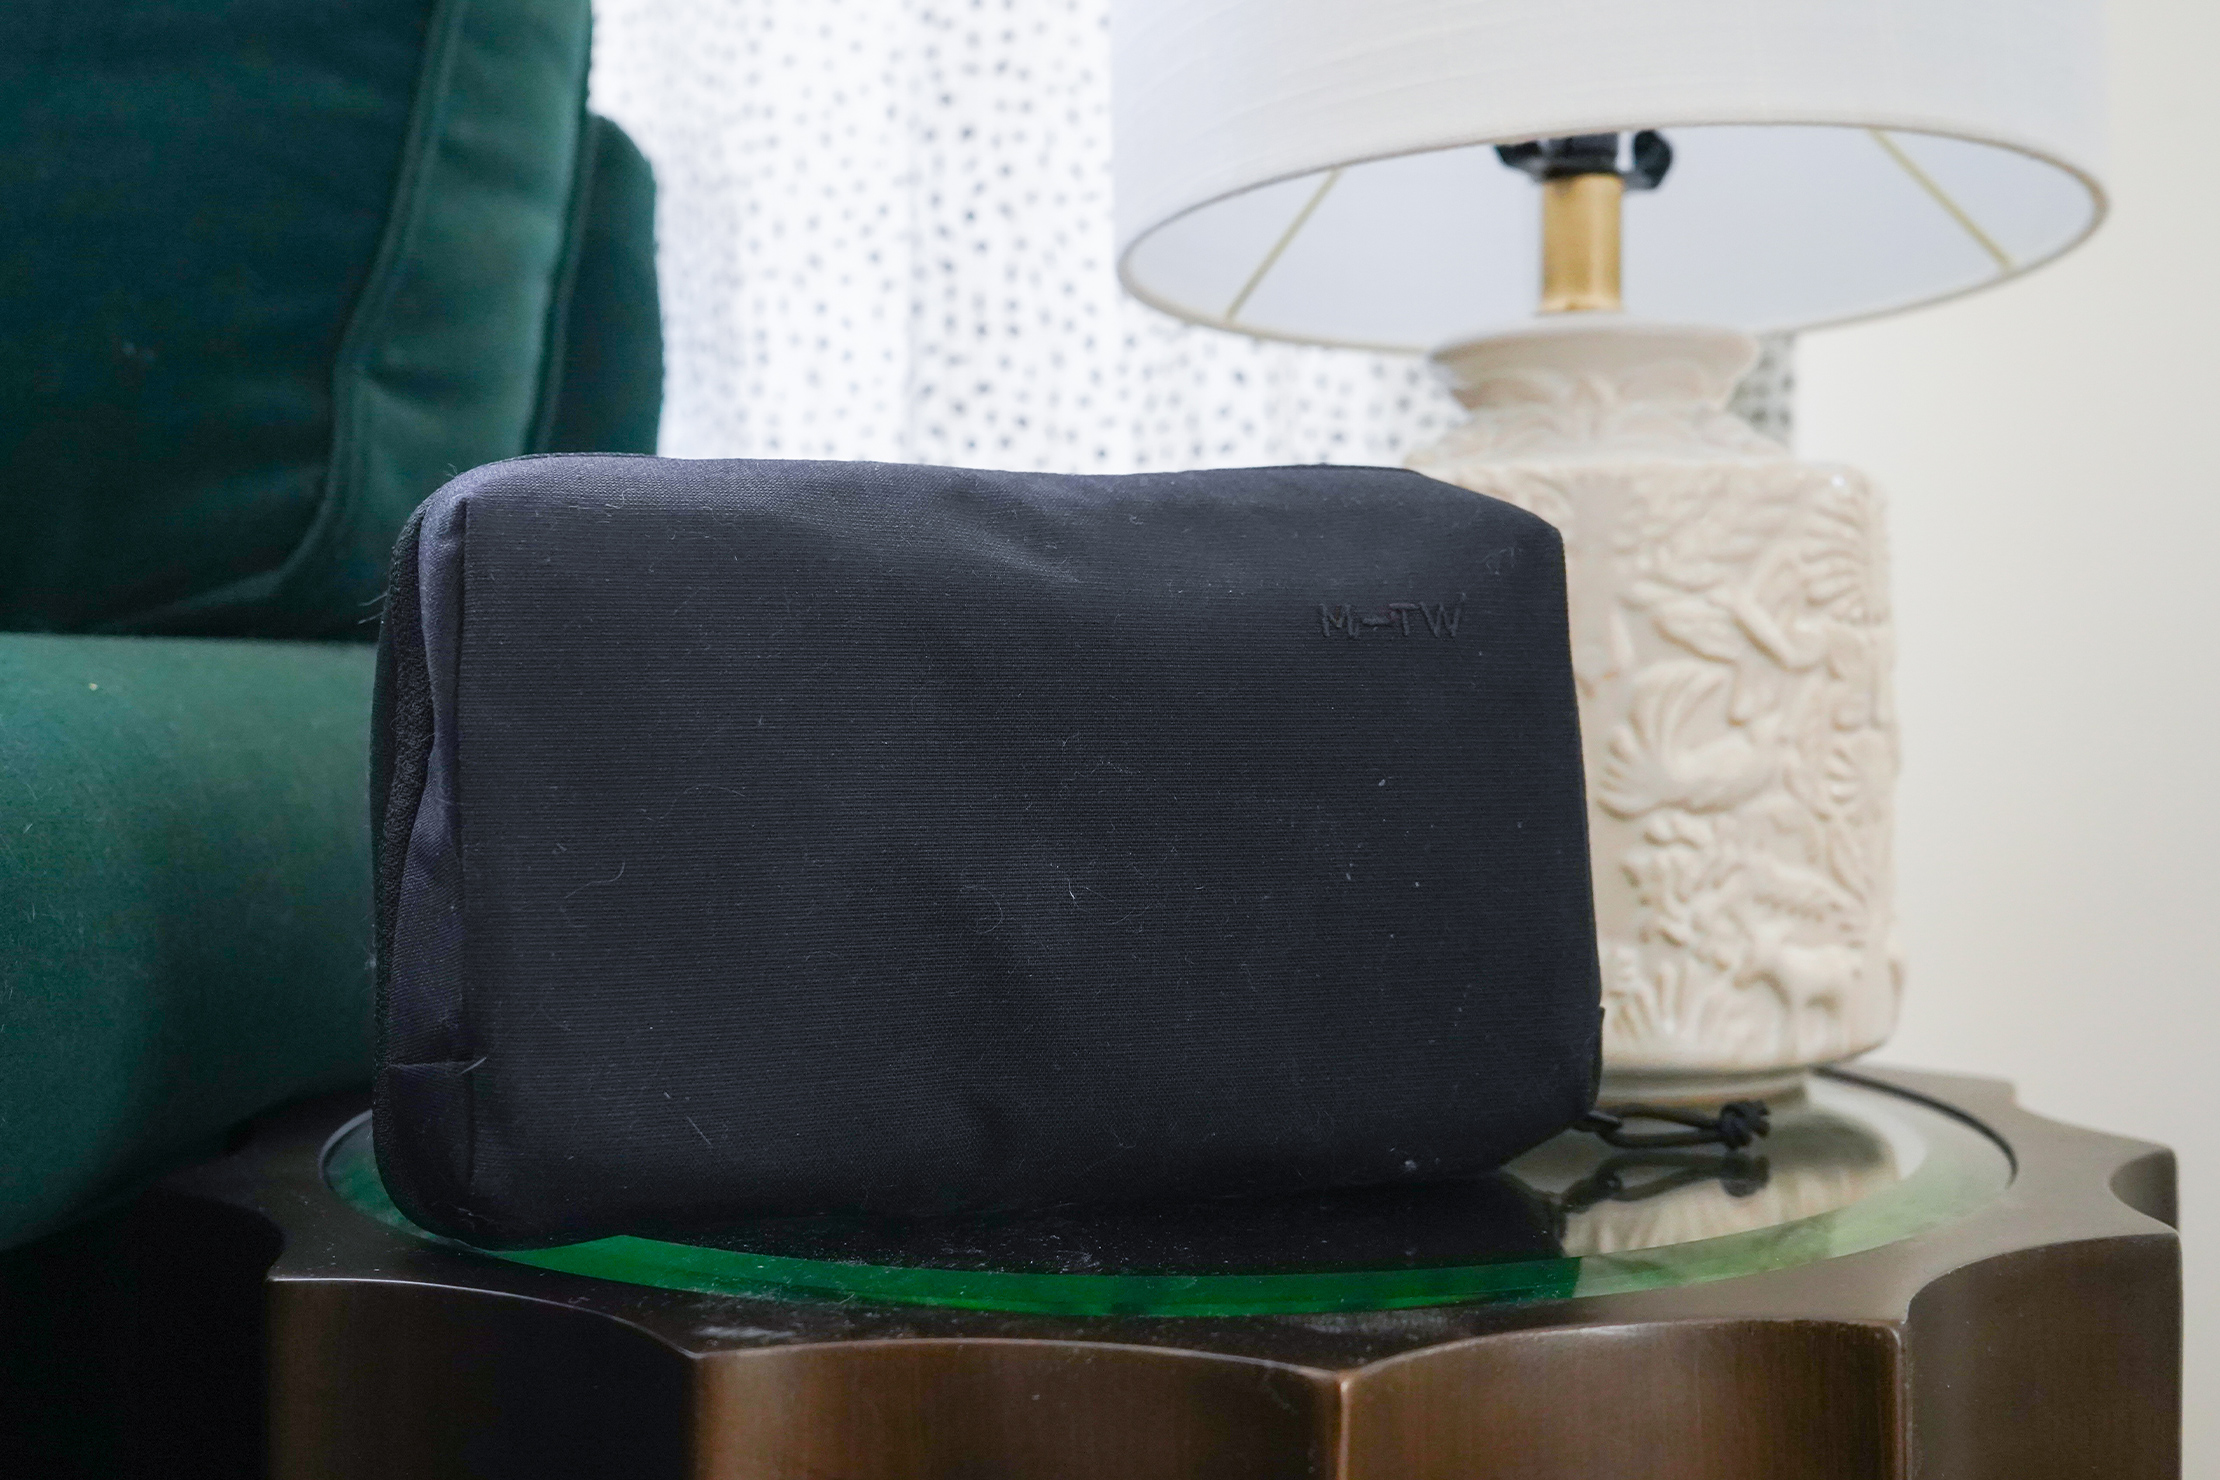 Moment MTW Tech Organizer | Using the pouch in the lounge